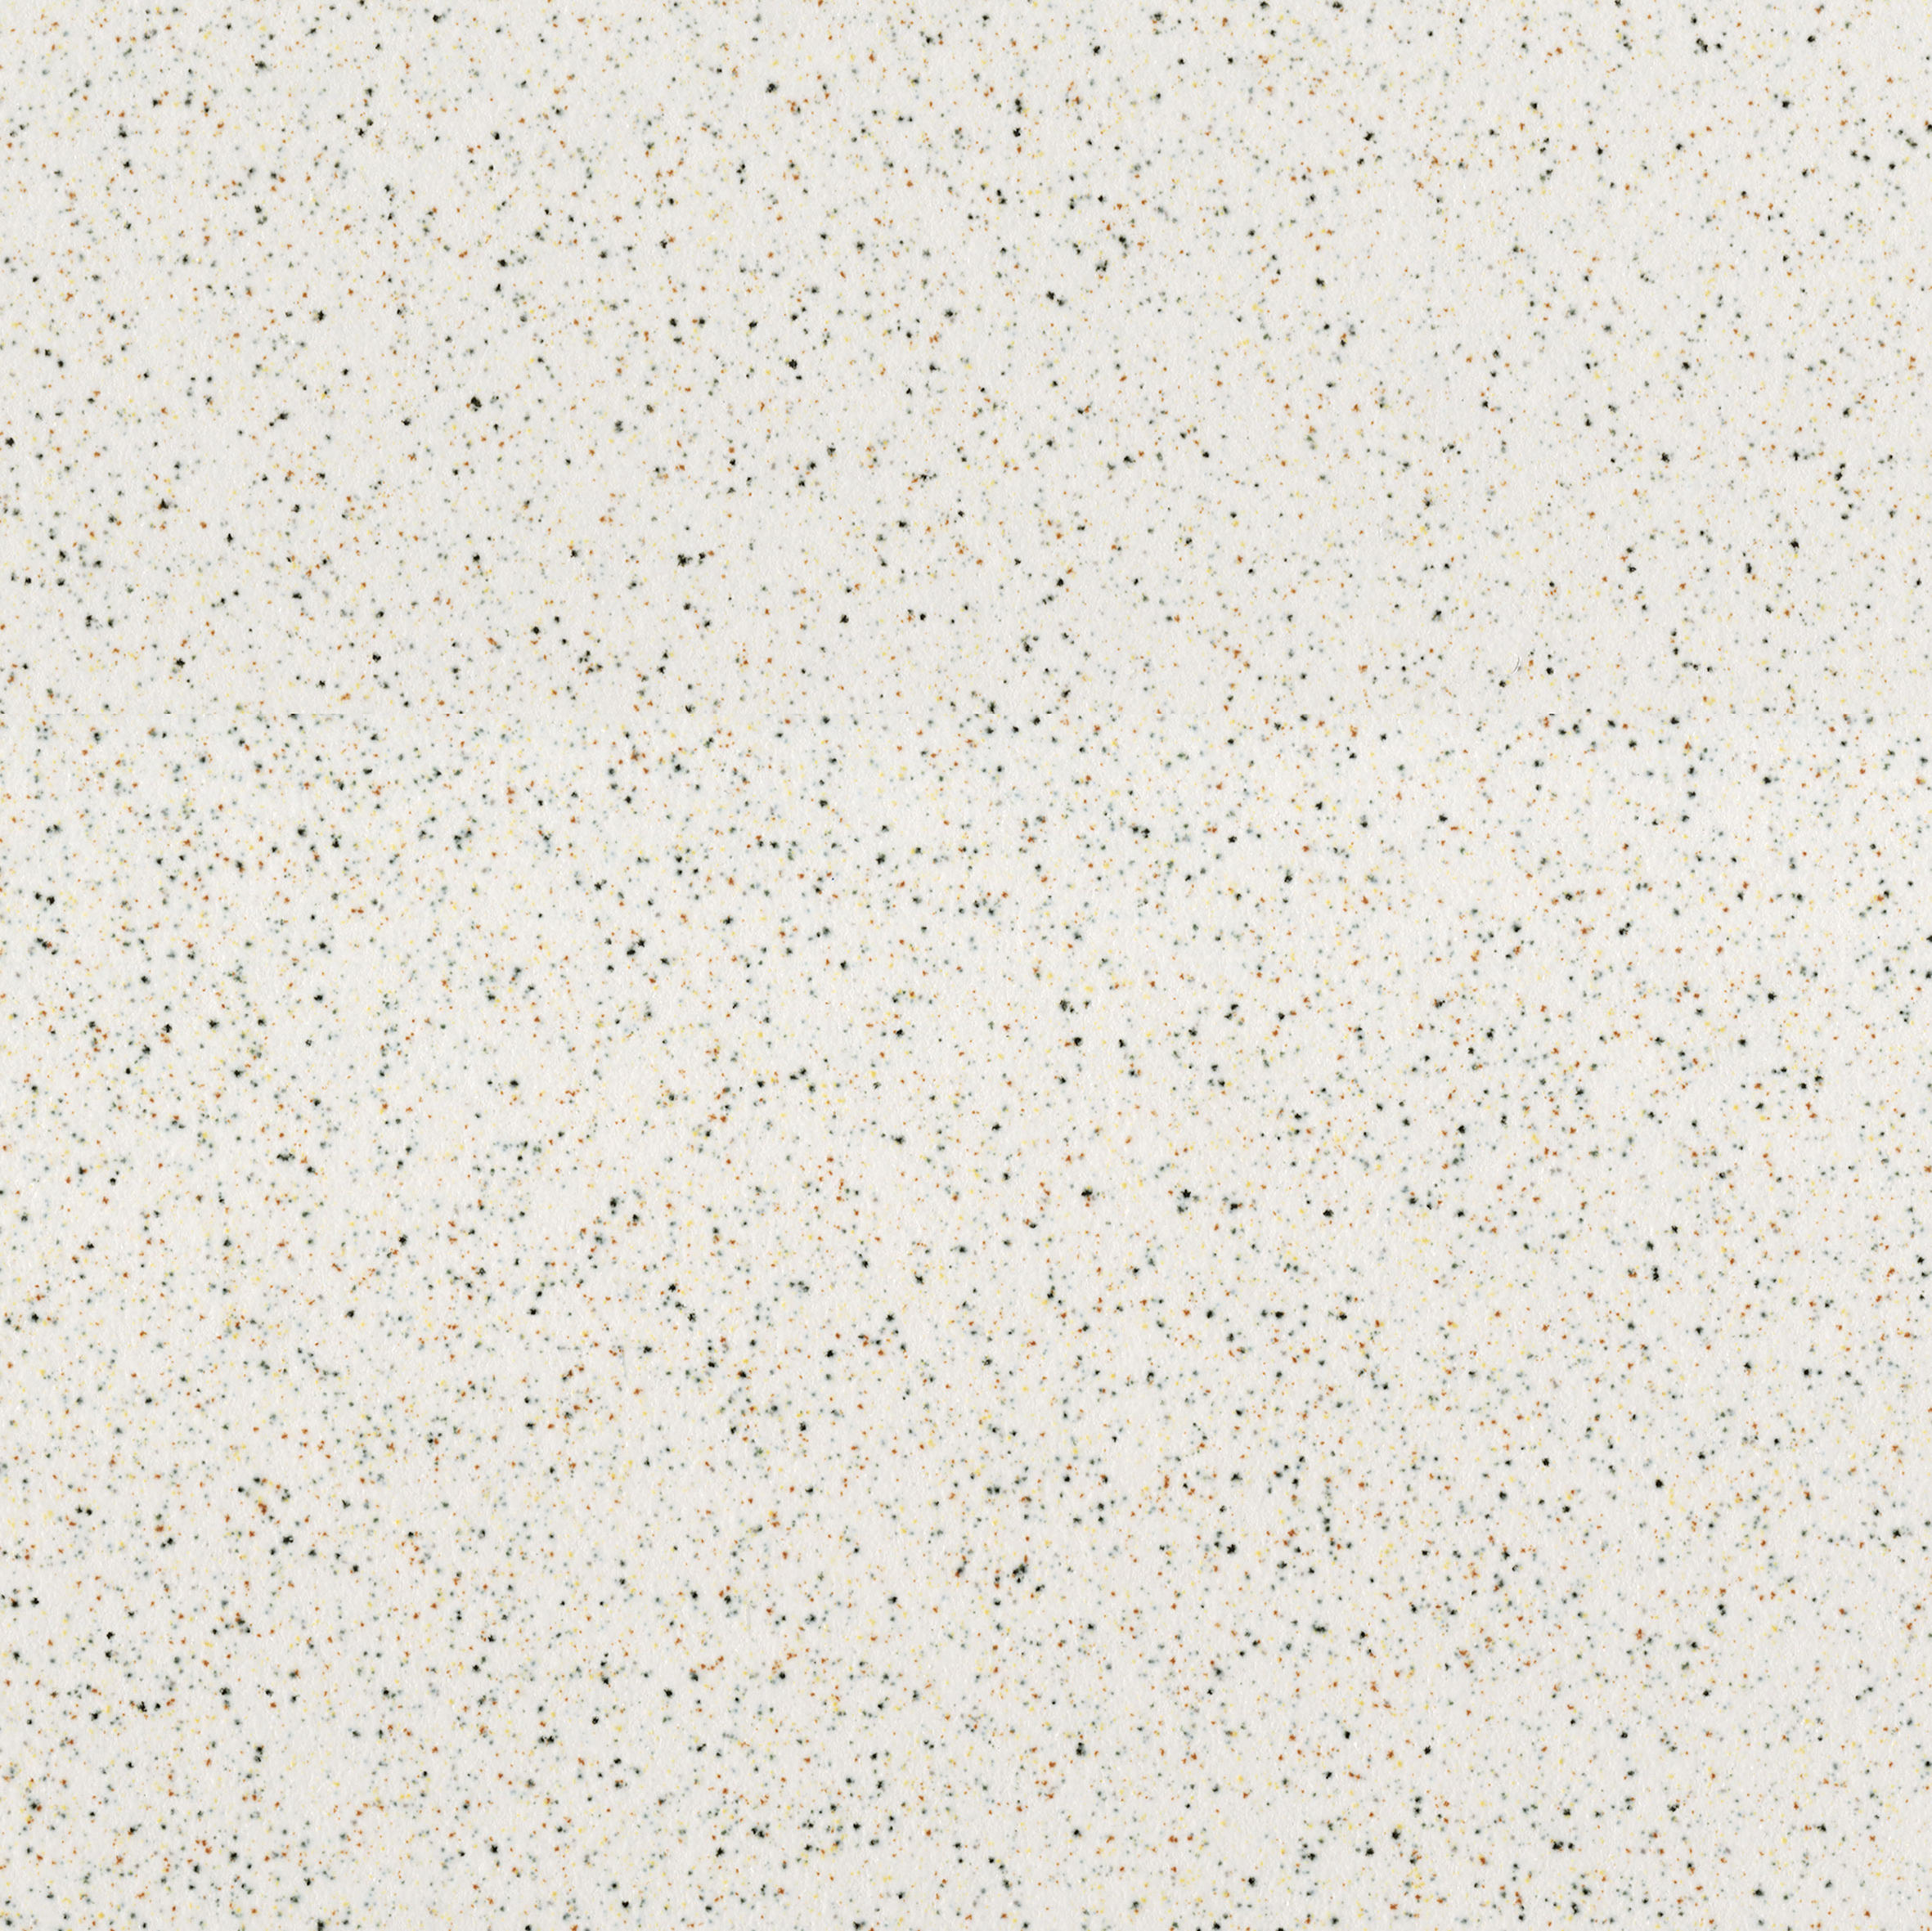 Salepepe sale sp4040s floor tiles from ornamenta - Piastrelle 10x10 sale e pepe ...